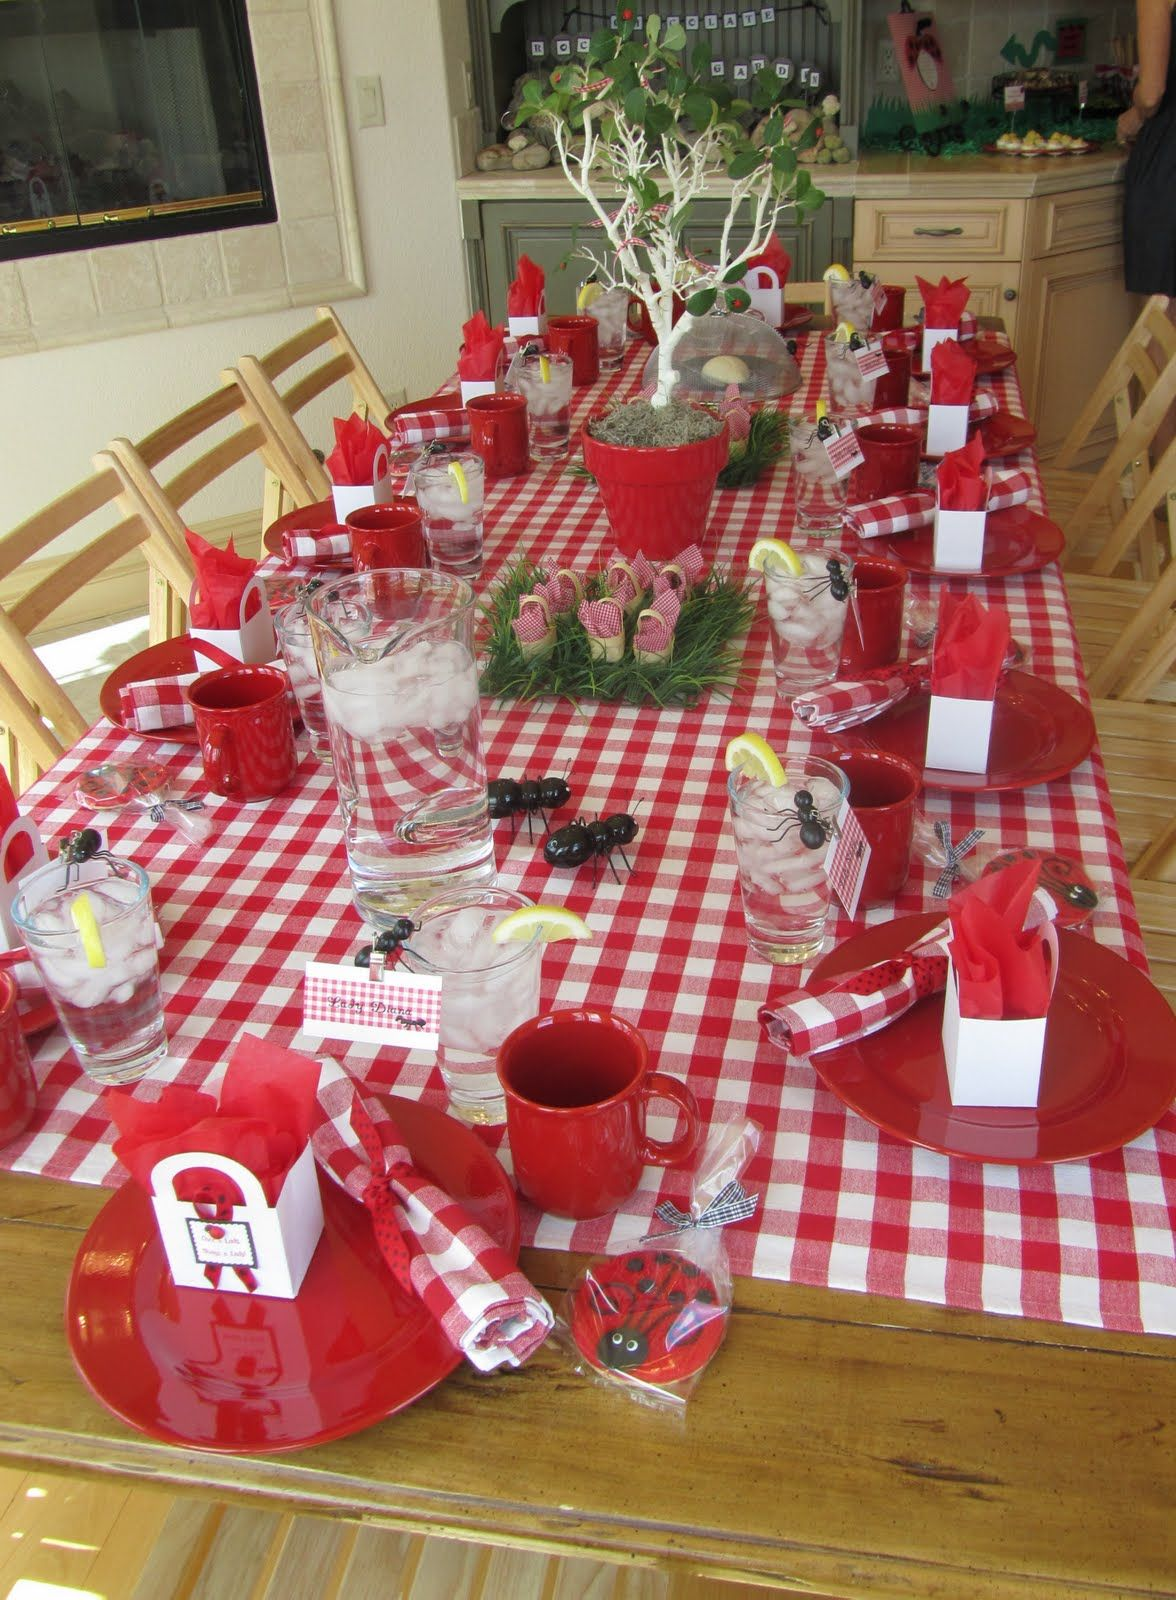 Picnic Themed Decorations Just A Slice Of Apple Pie Jungle Picnic Party